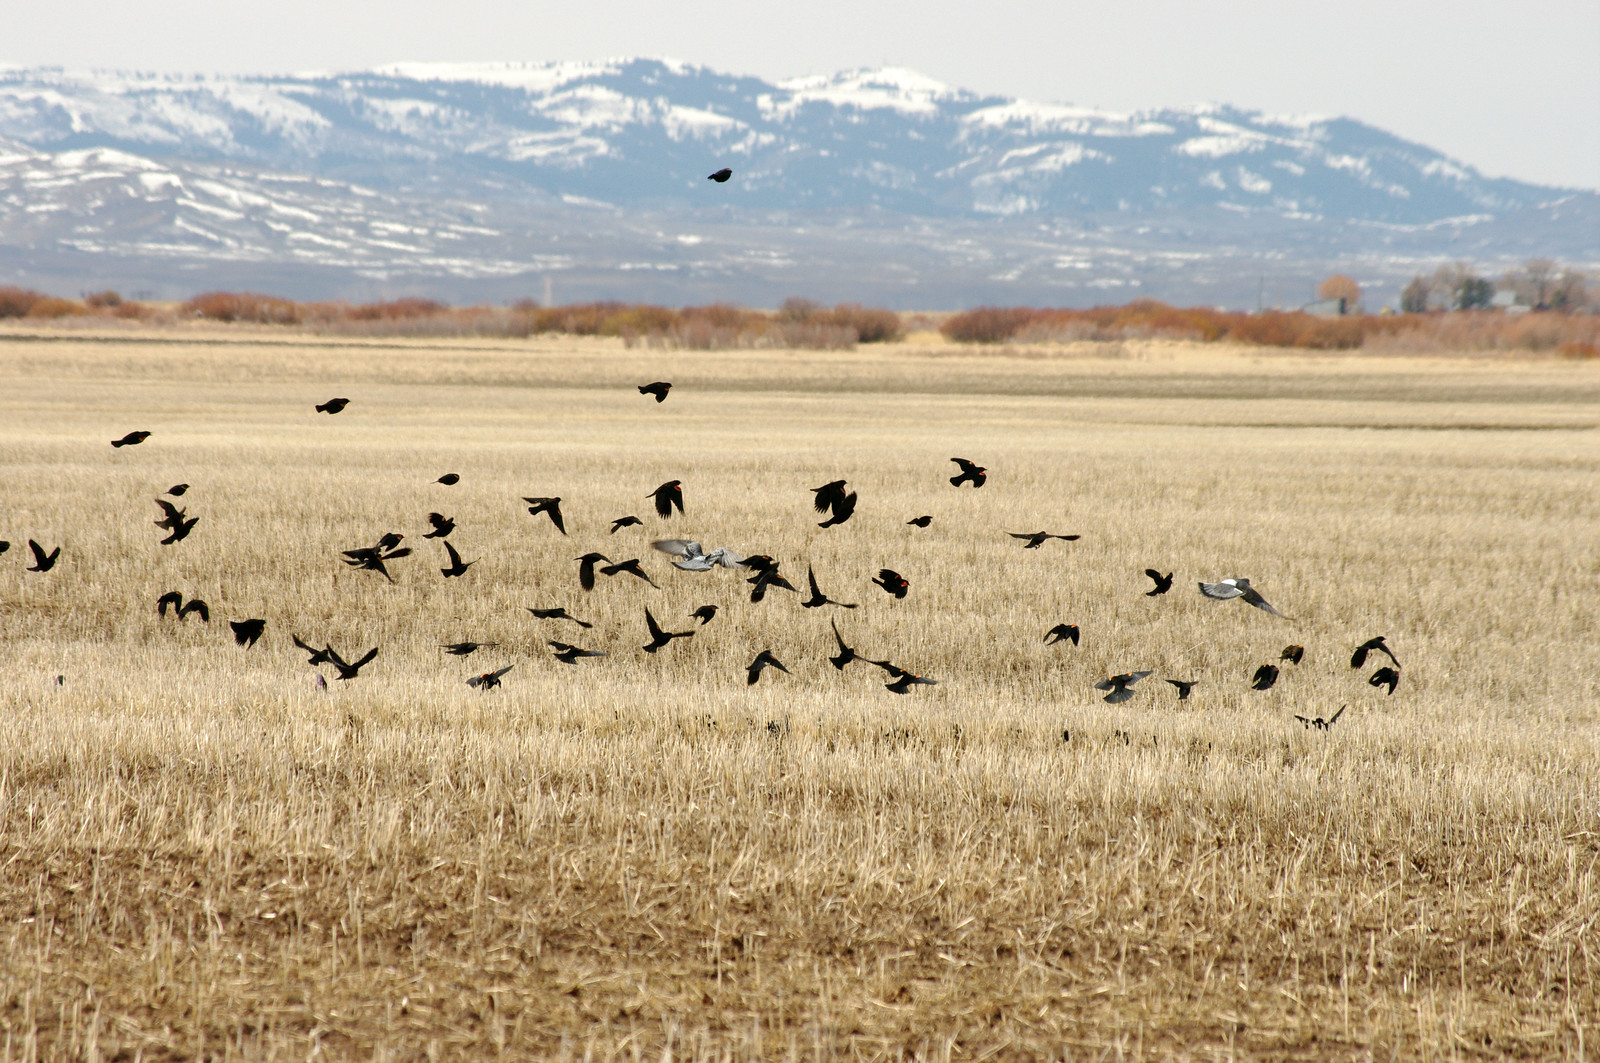 Rock Doves flocking with Red-Winged Blackbirds over a field of grain stubble